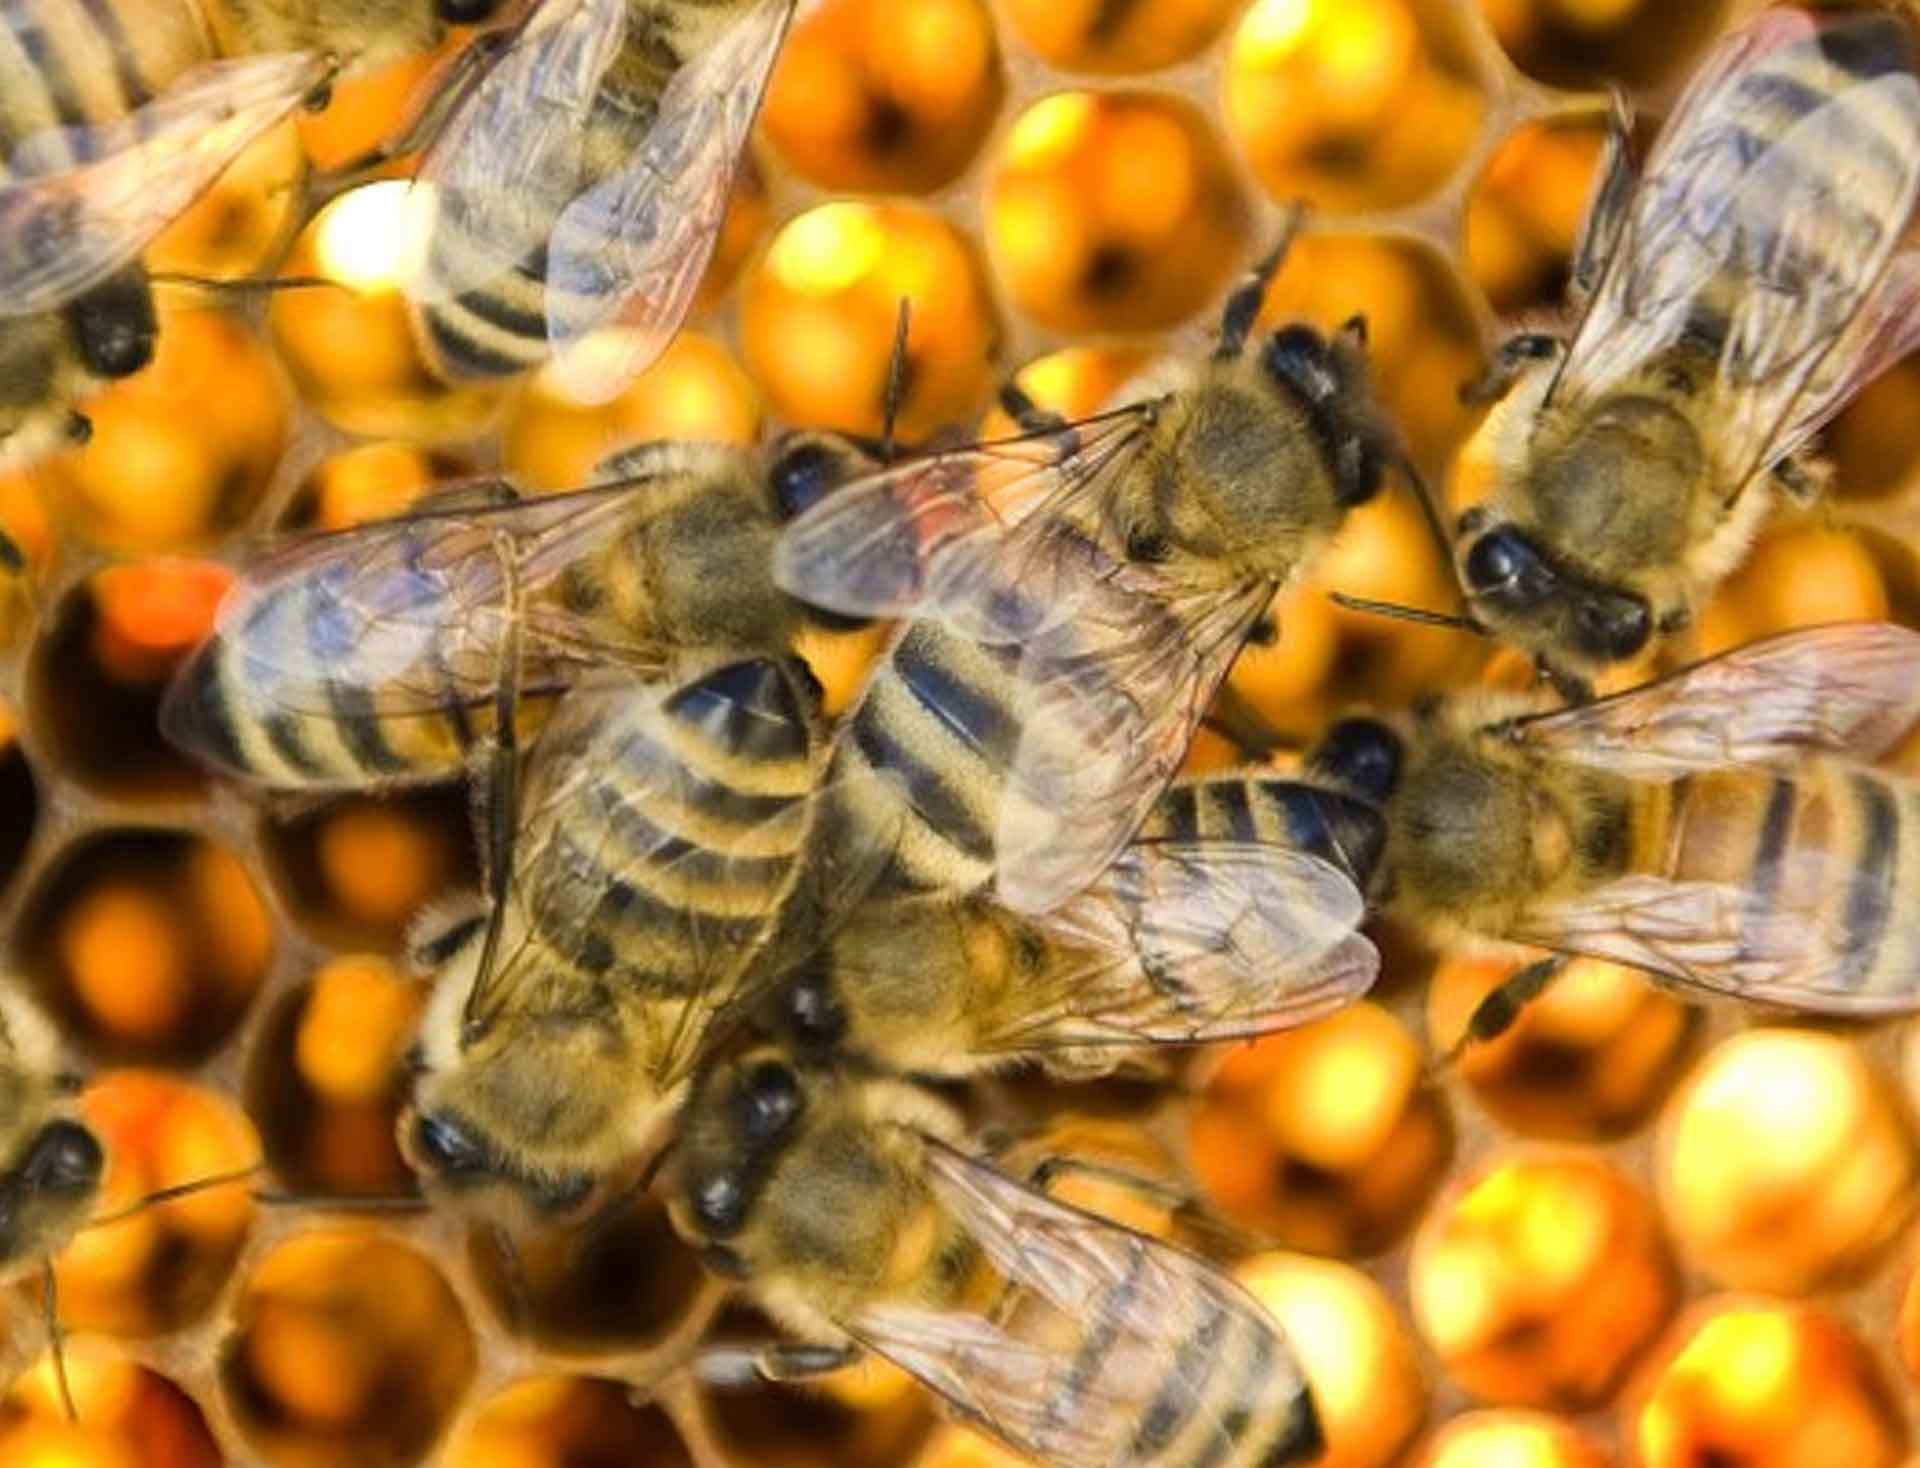 Mite resistant VSH bees posing for the Washington Post.